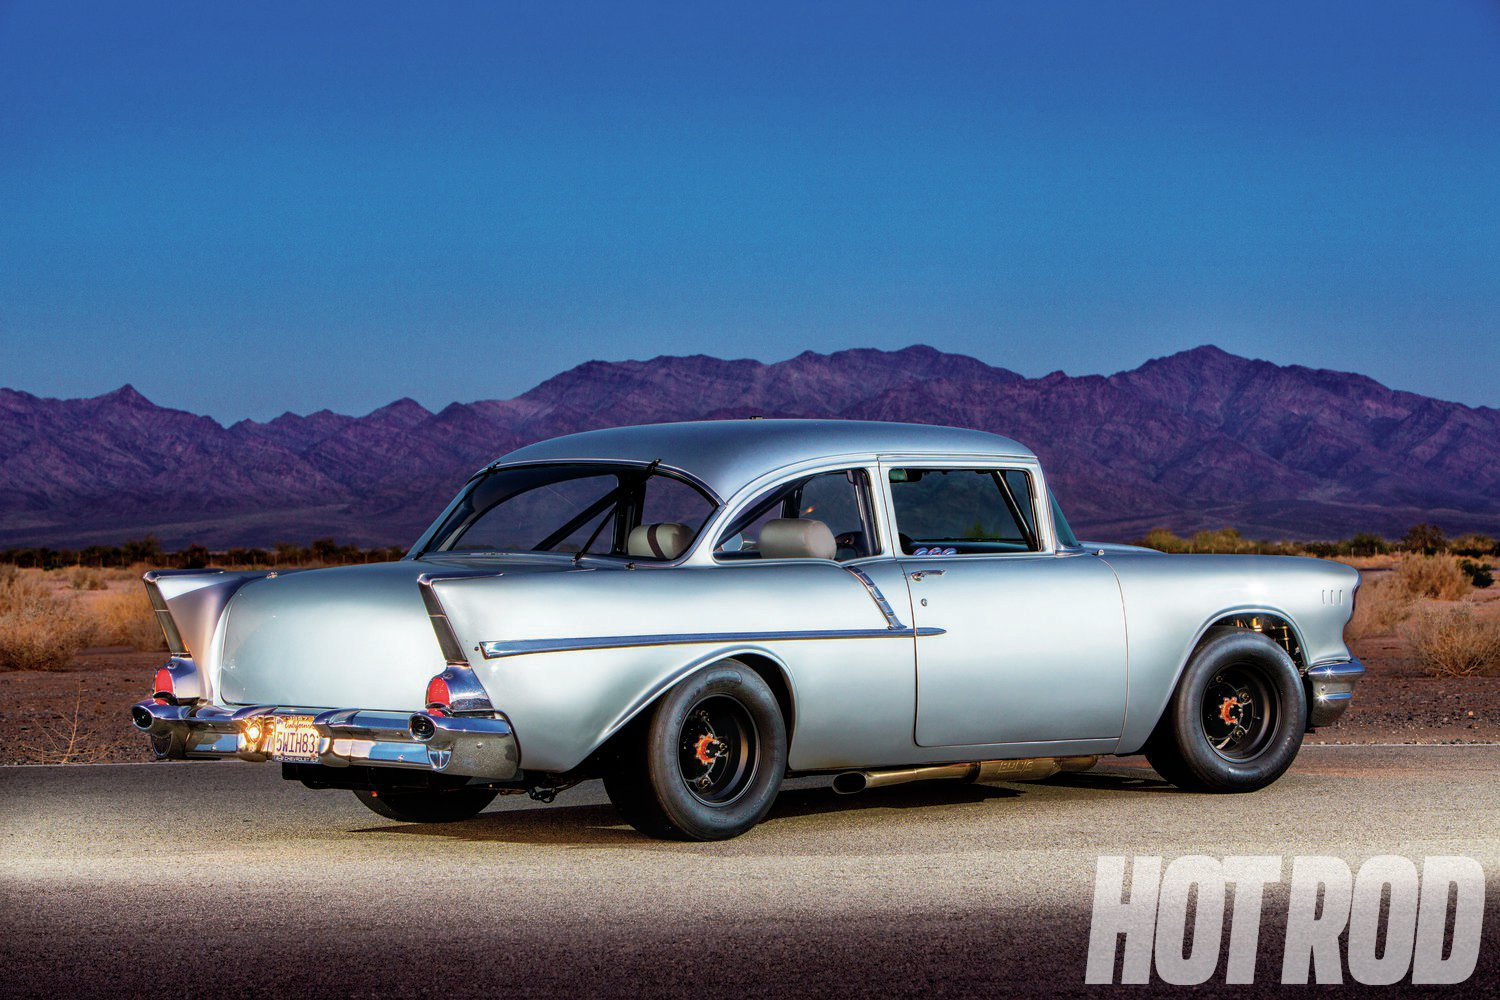 57 Chevy  Quick Silver   Hot Rod Network You don t see  57 Chevys shredding turns at road courses  which is